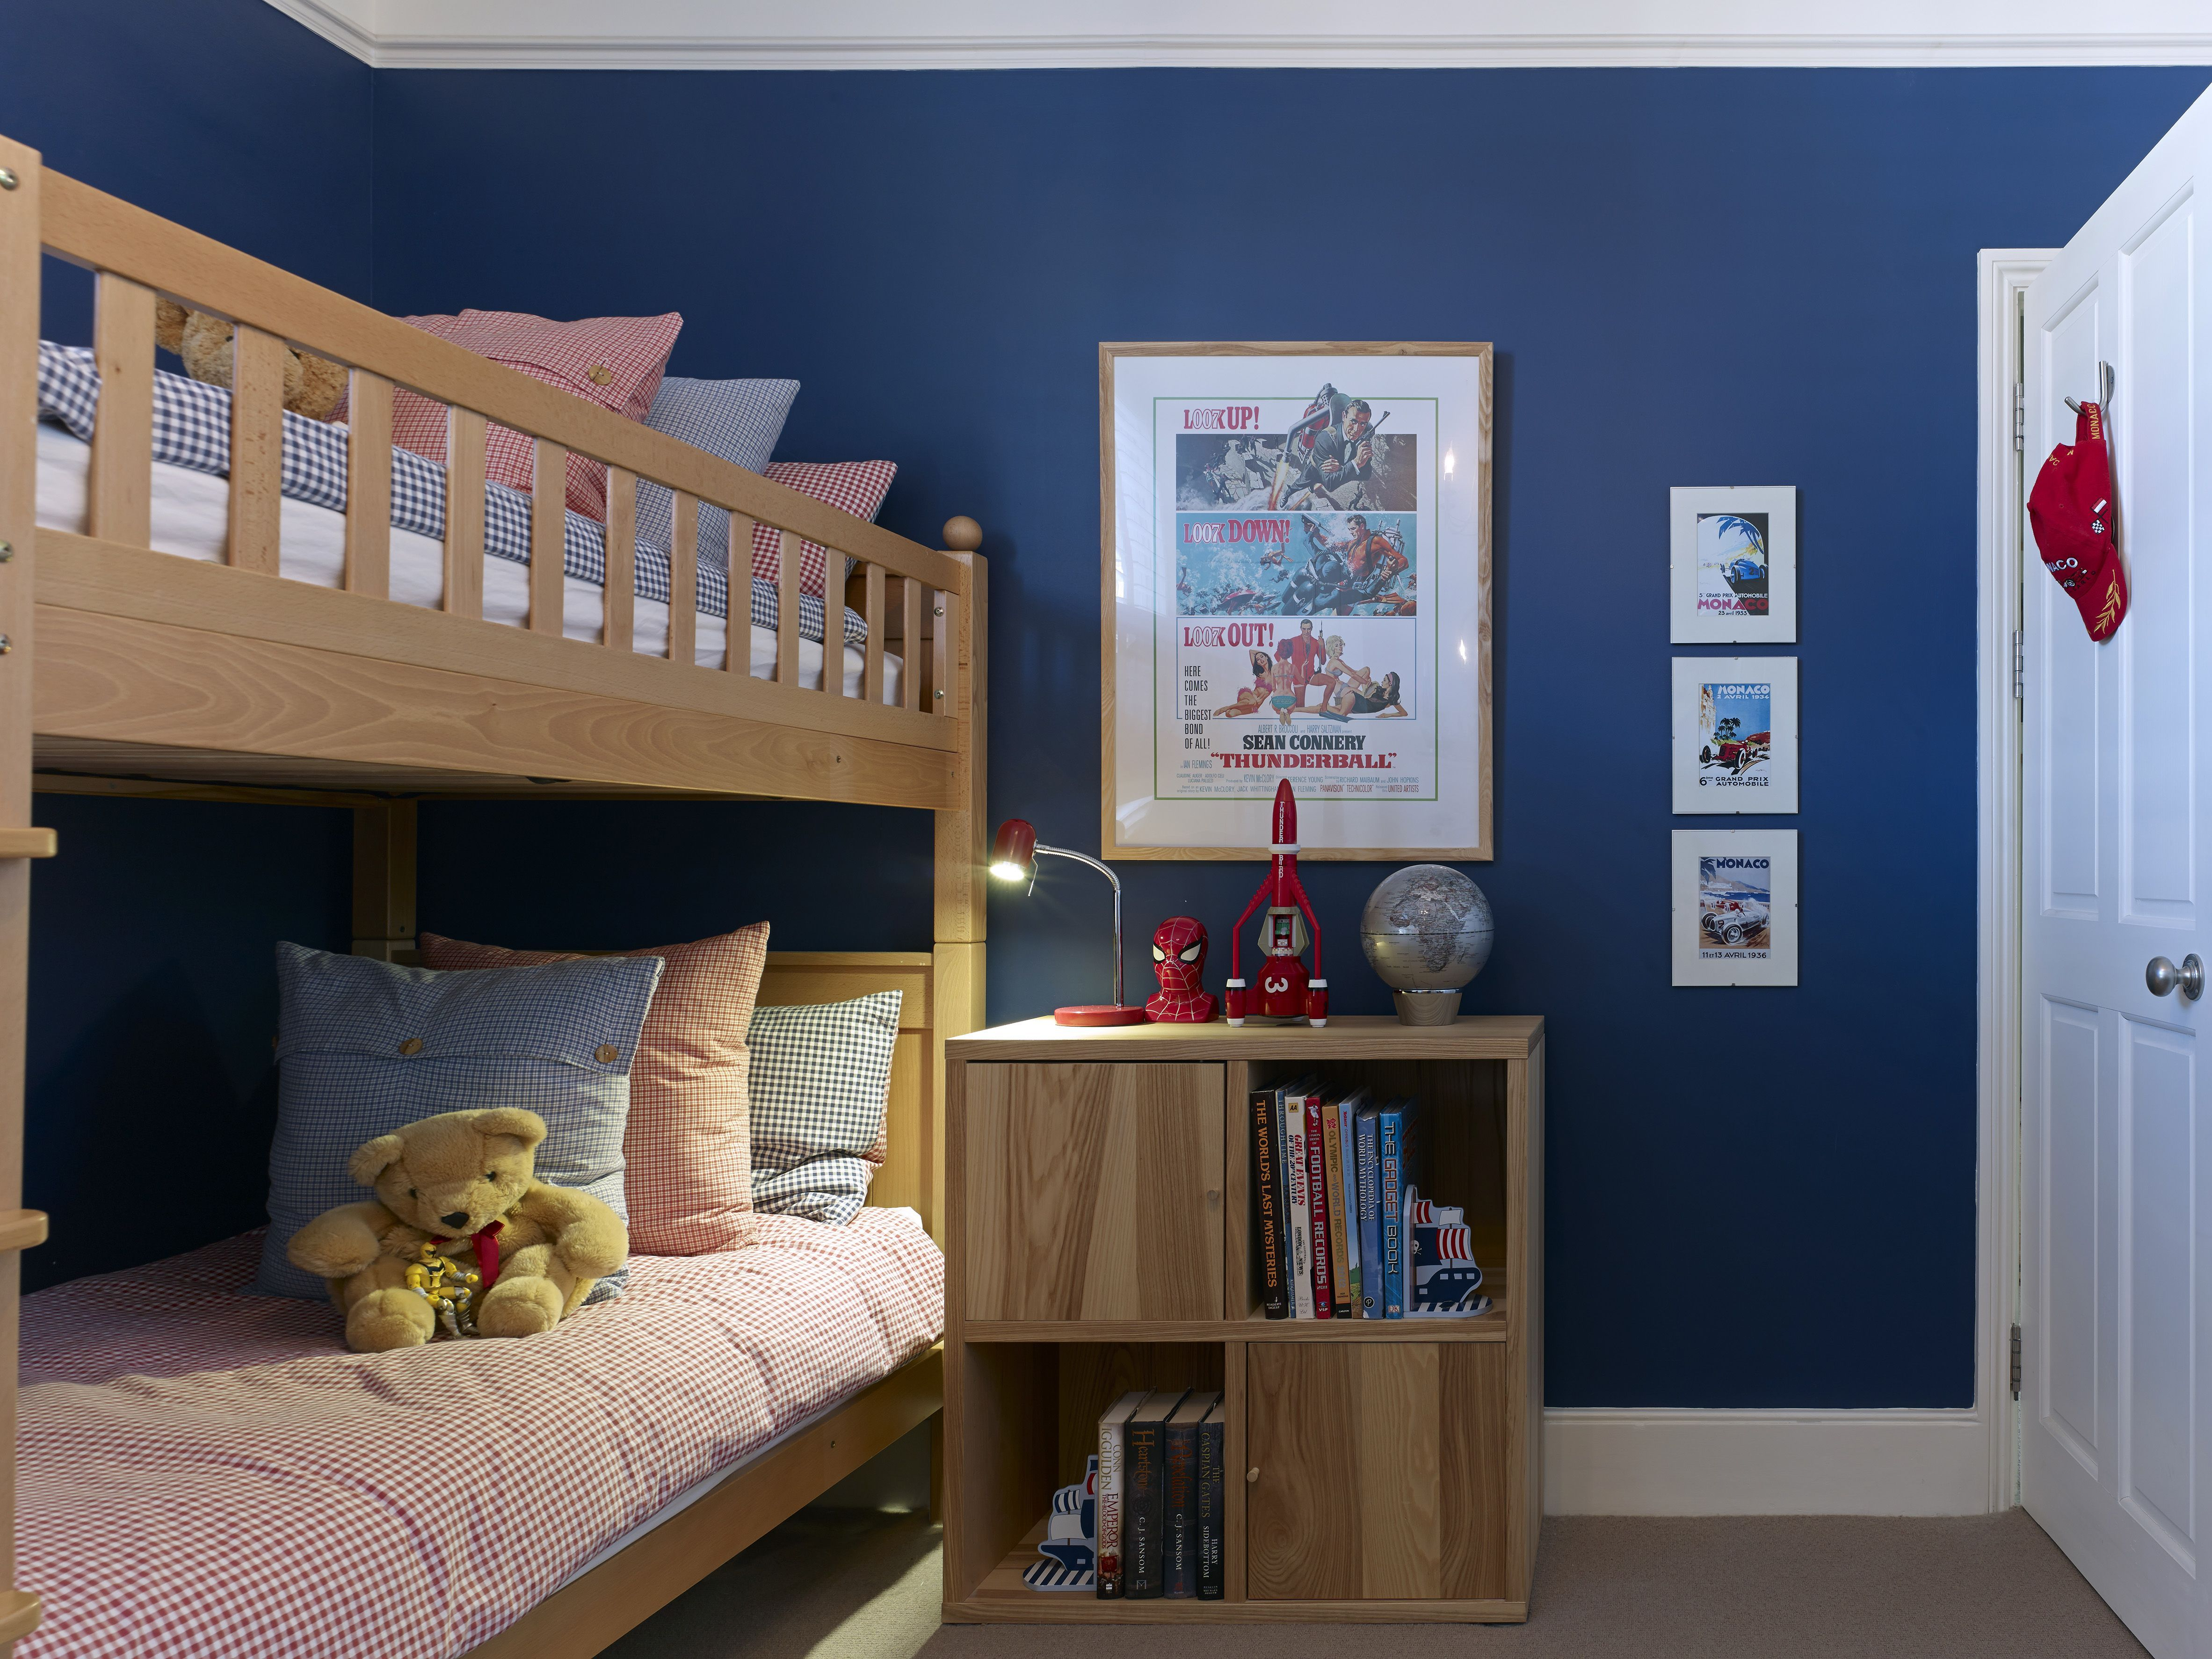 Bedroom Design For 7 Year Old Boy (With images) | Boys ...